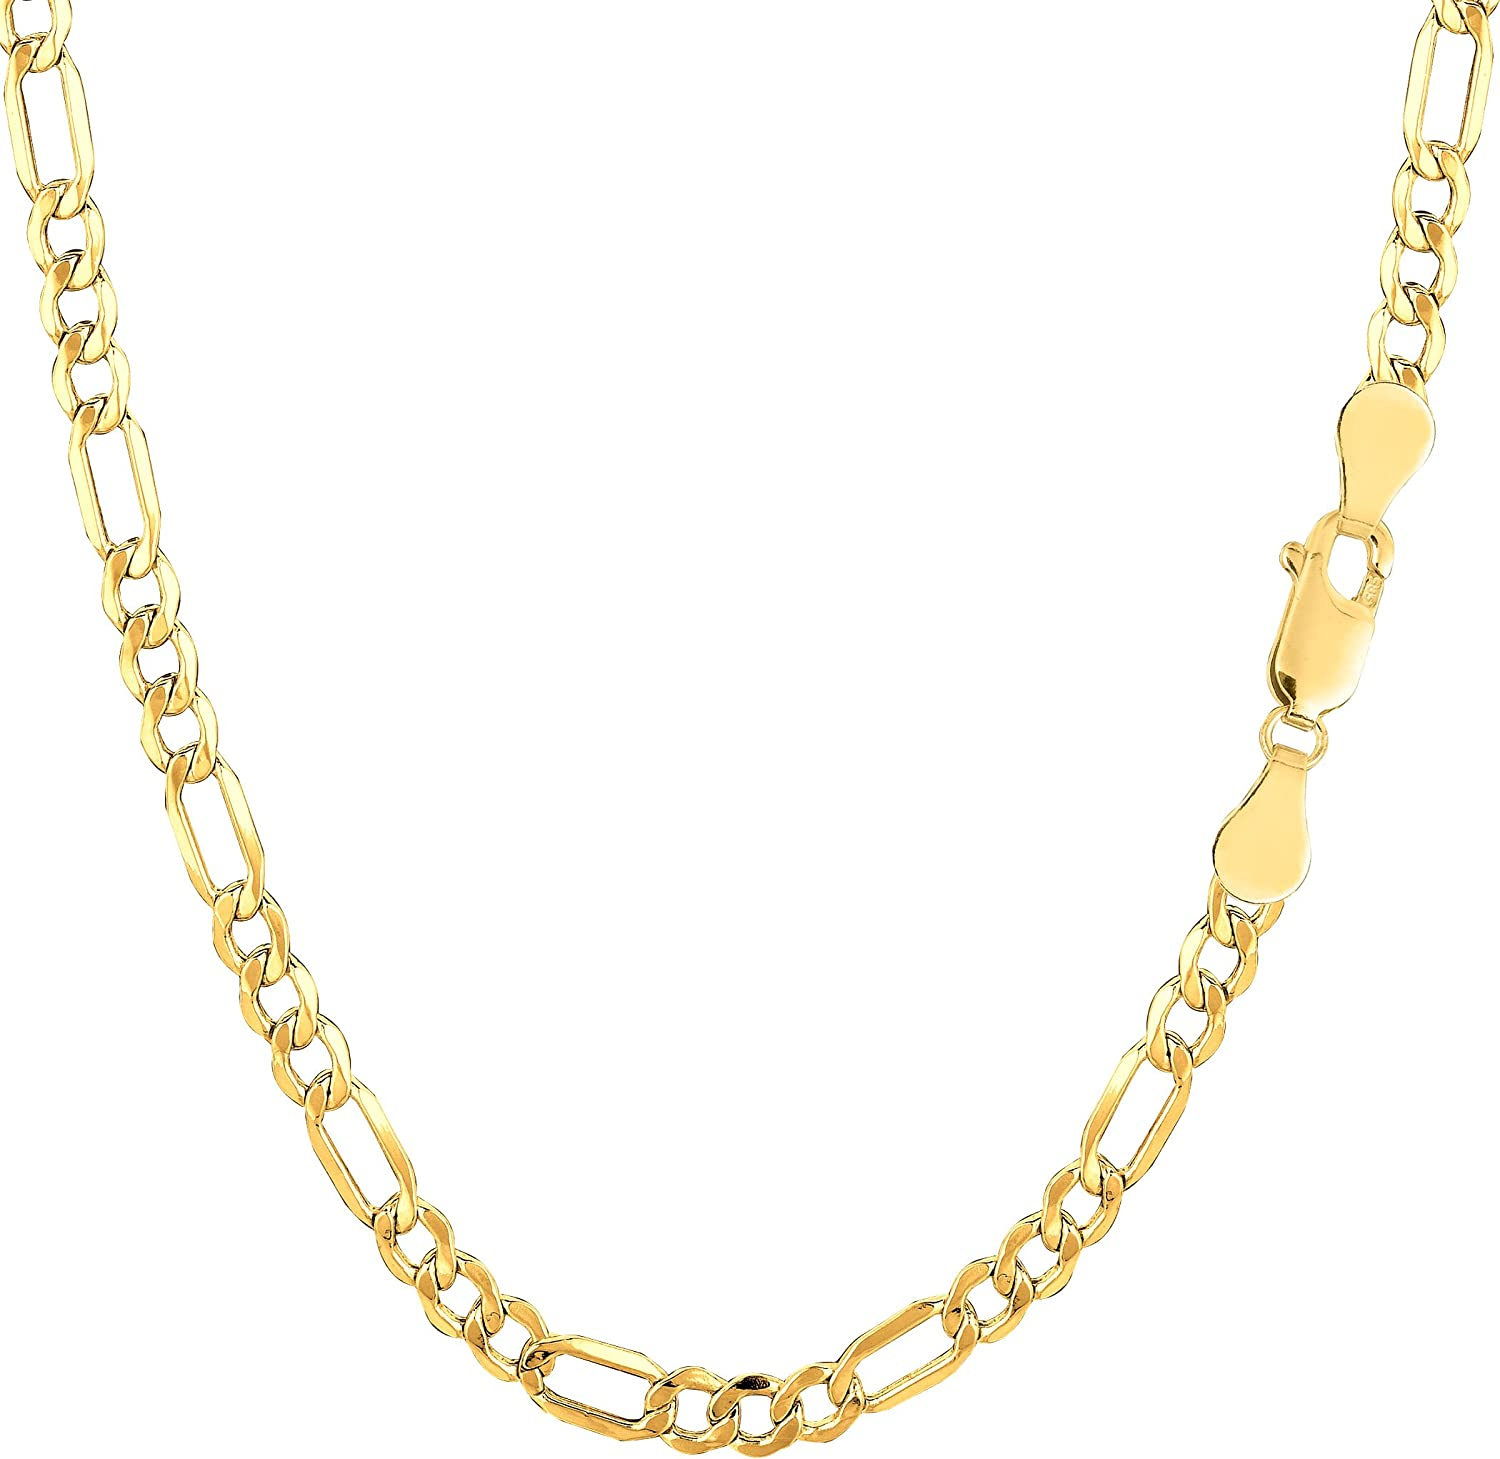 14K Yellow Gold Filled Figaro Chain Necklace, 3.2 mm Wide